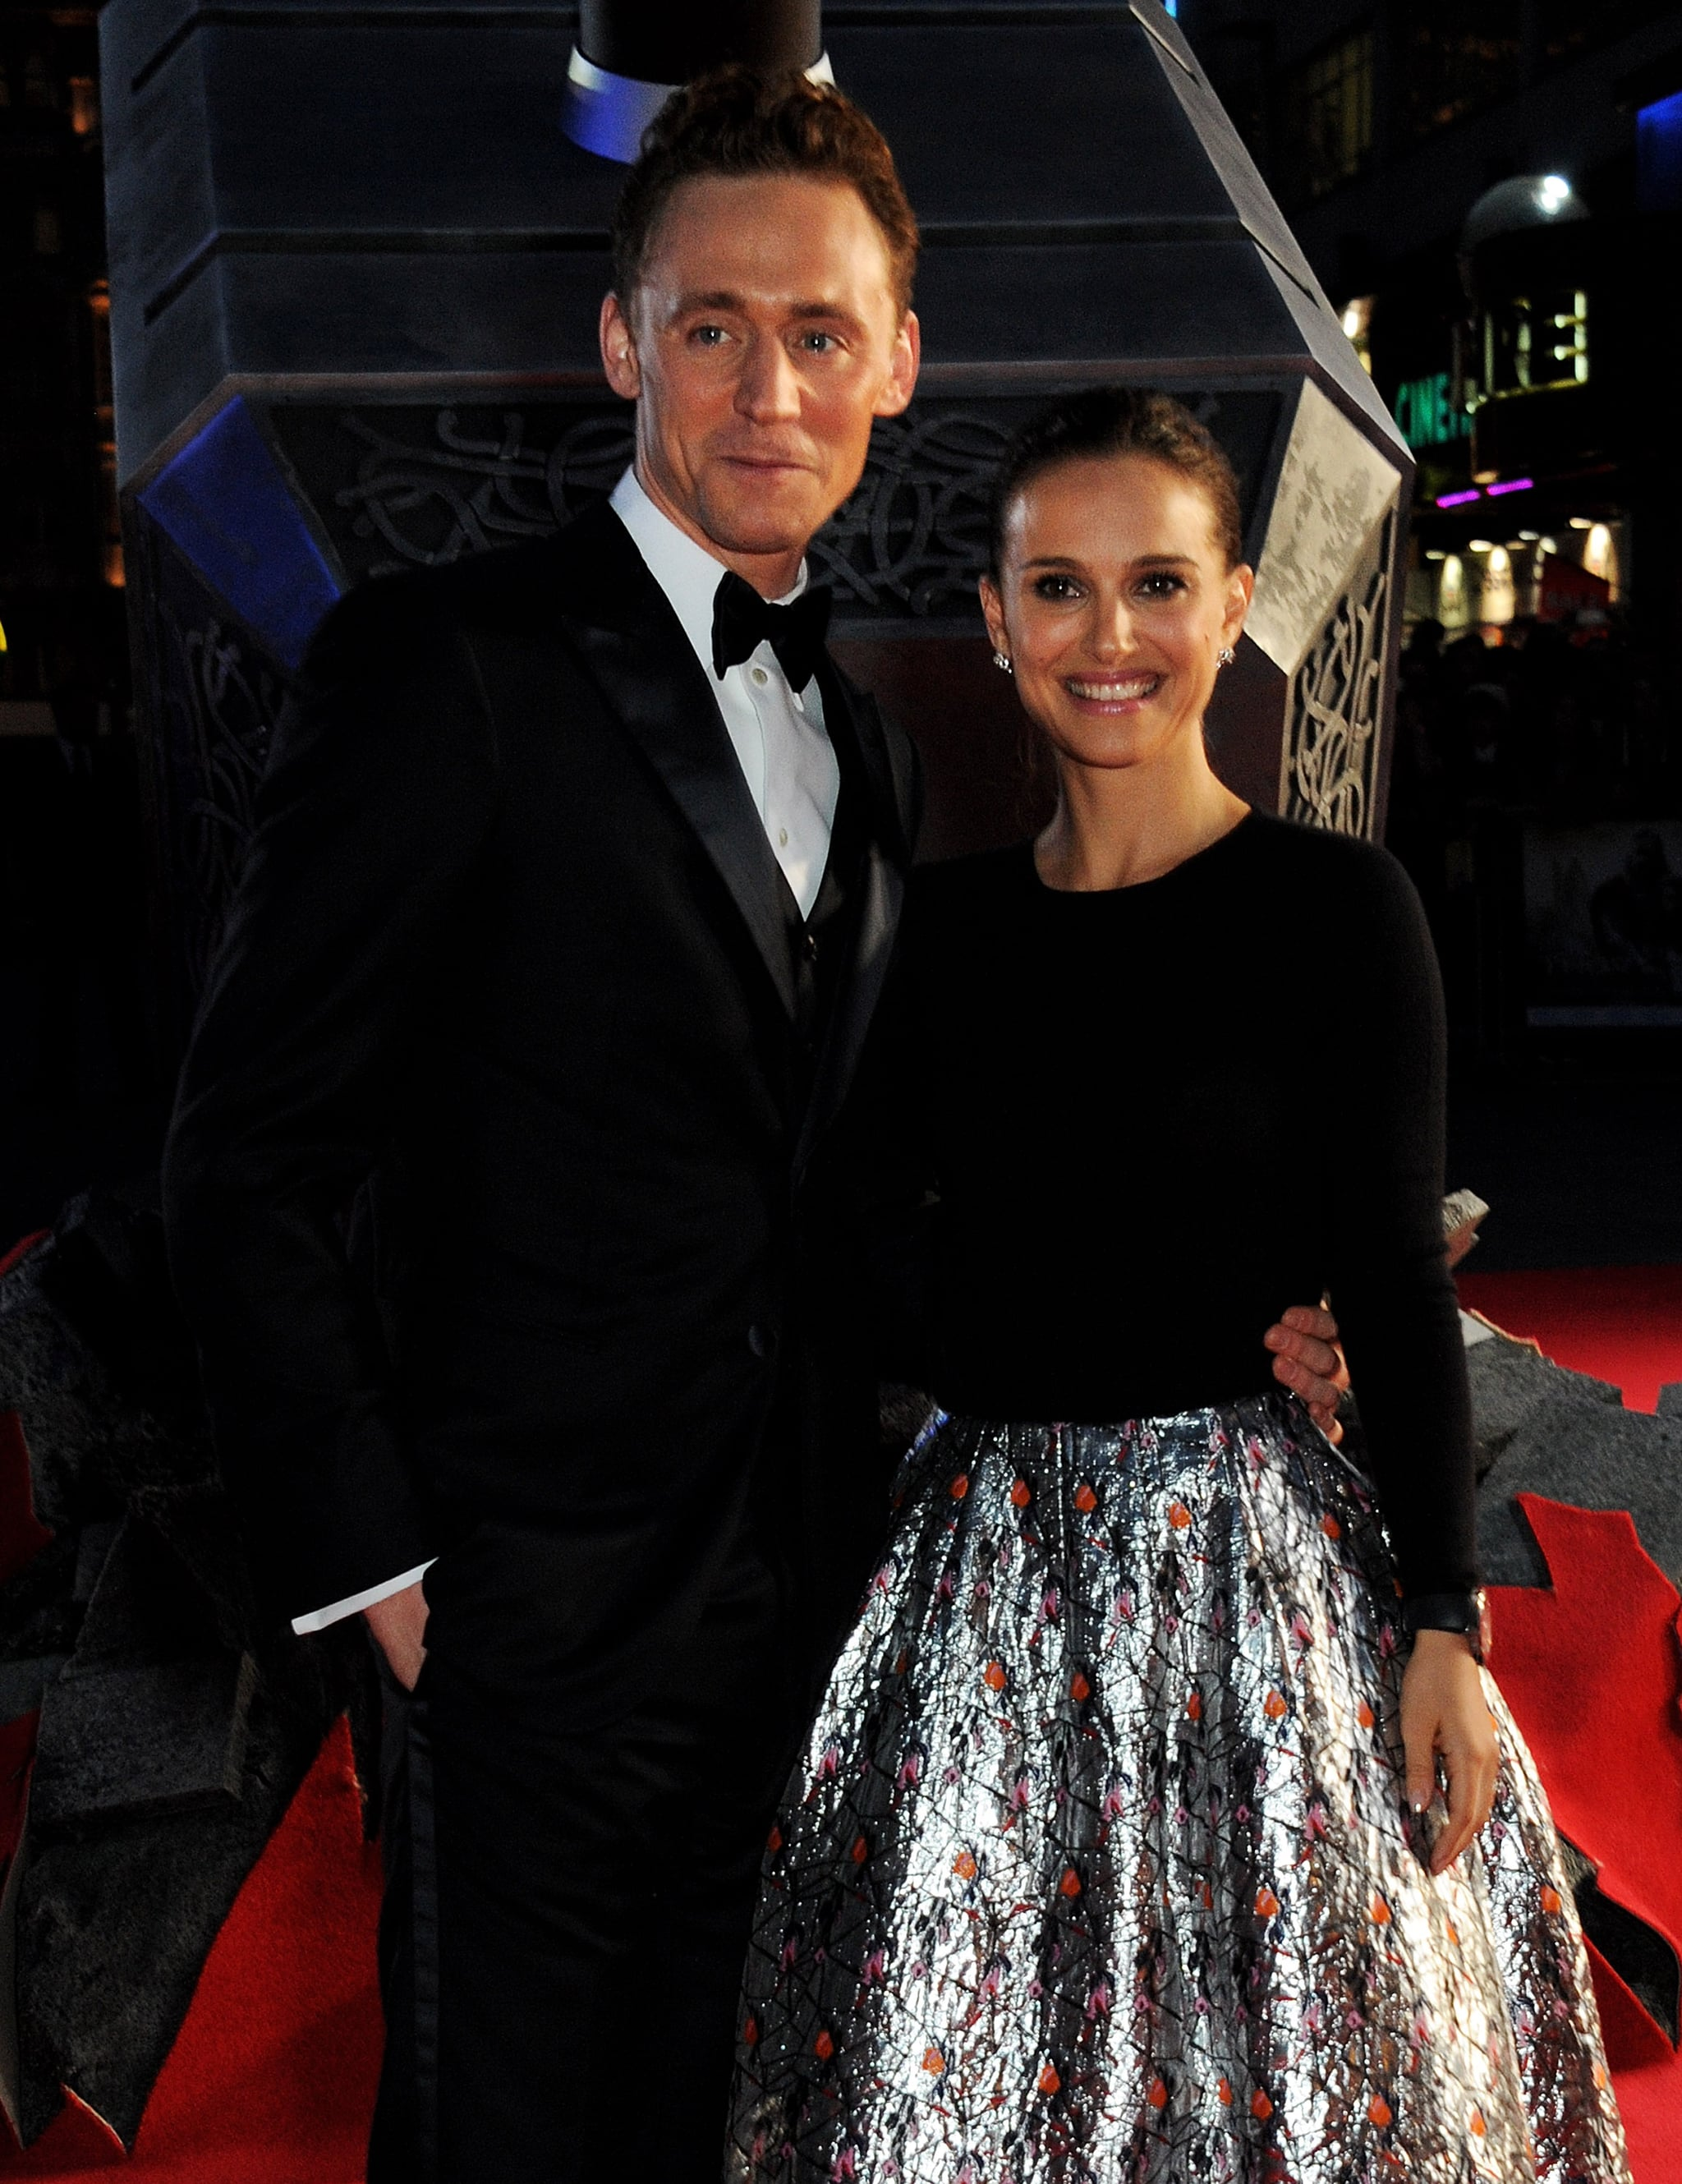 Tom Hiddleston and Natalie Portman saw each other on the red carpet at the Thor: The Dark World world premiere in London on Tuesday.